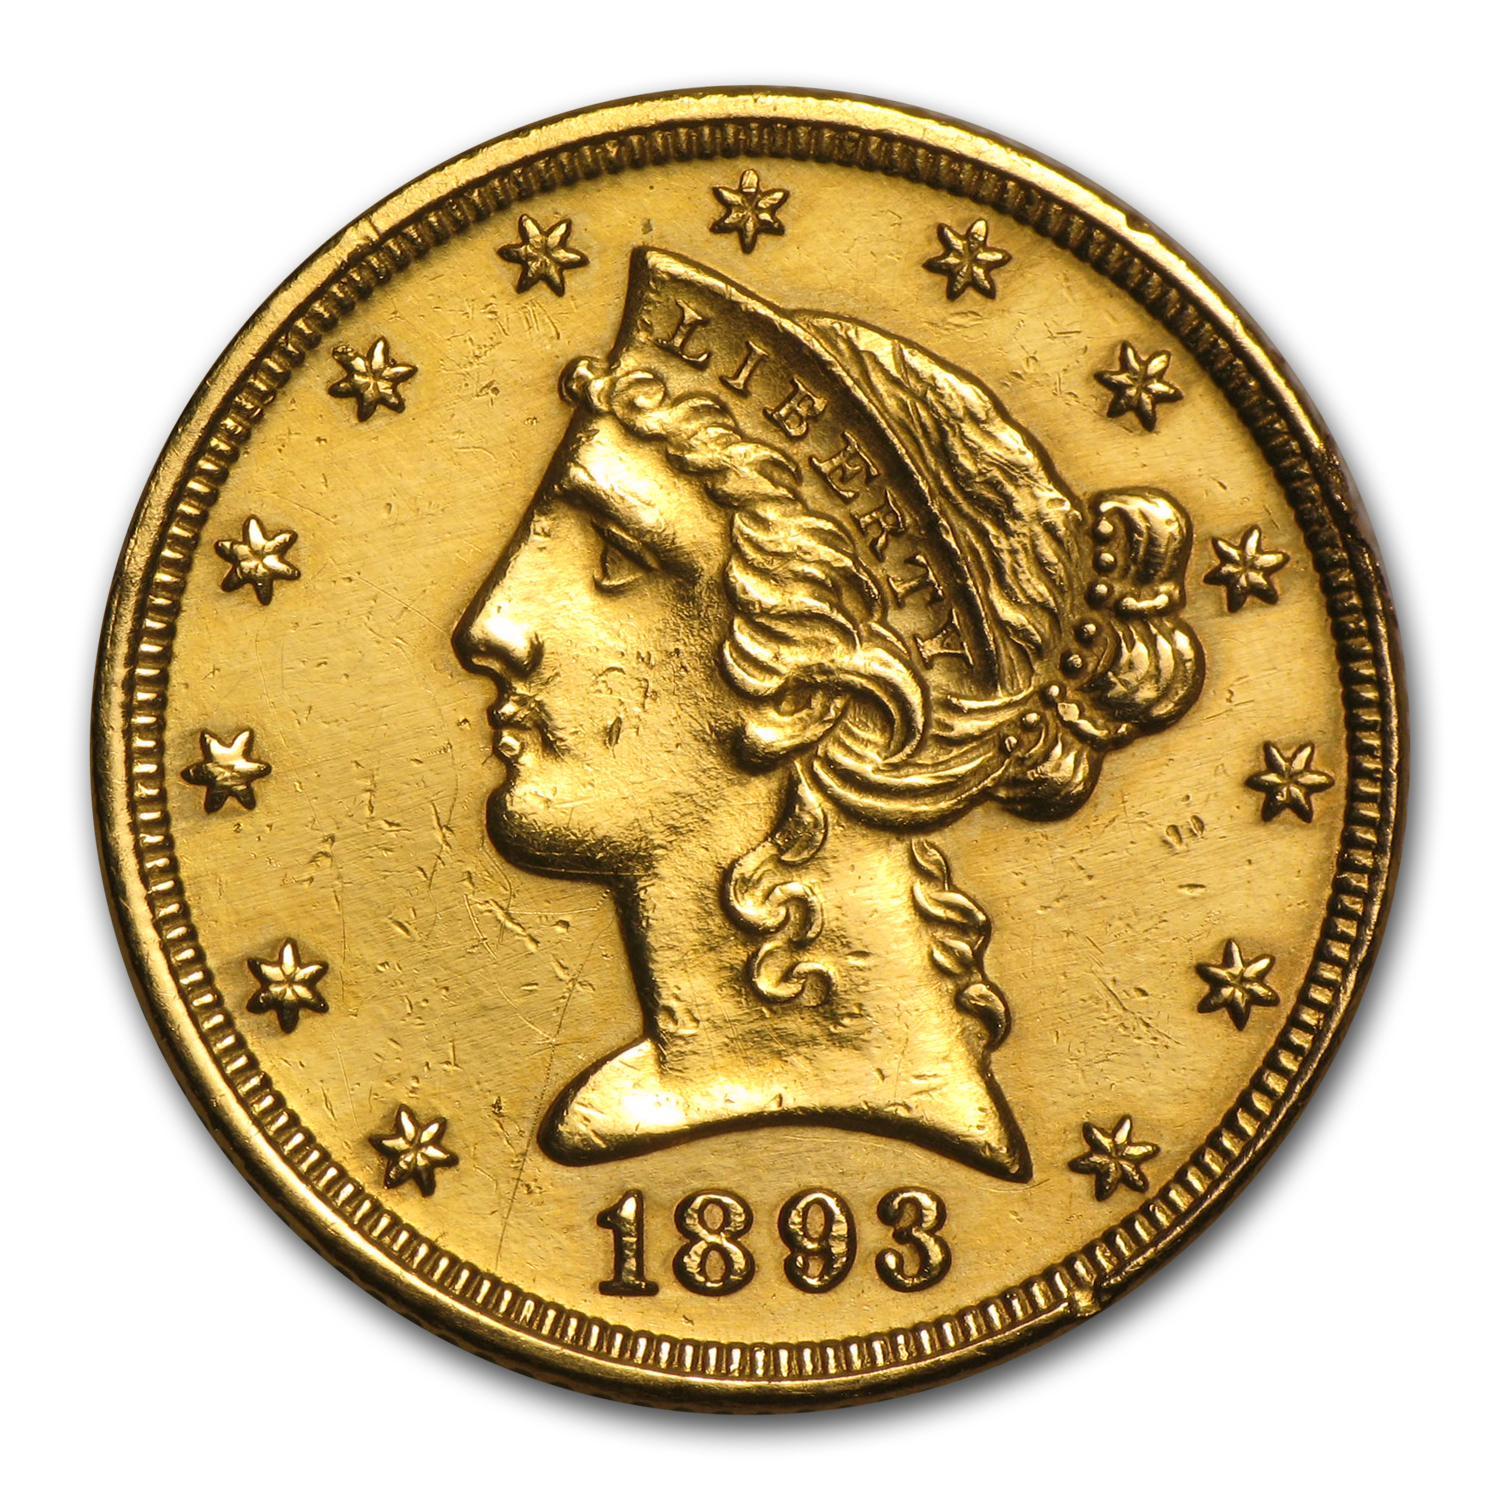 $5 Liberty Gold Half Eagle (Heavily Damaged)